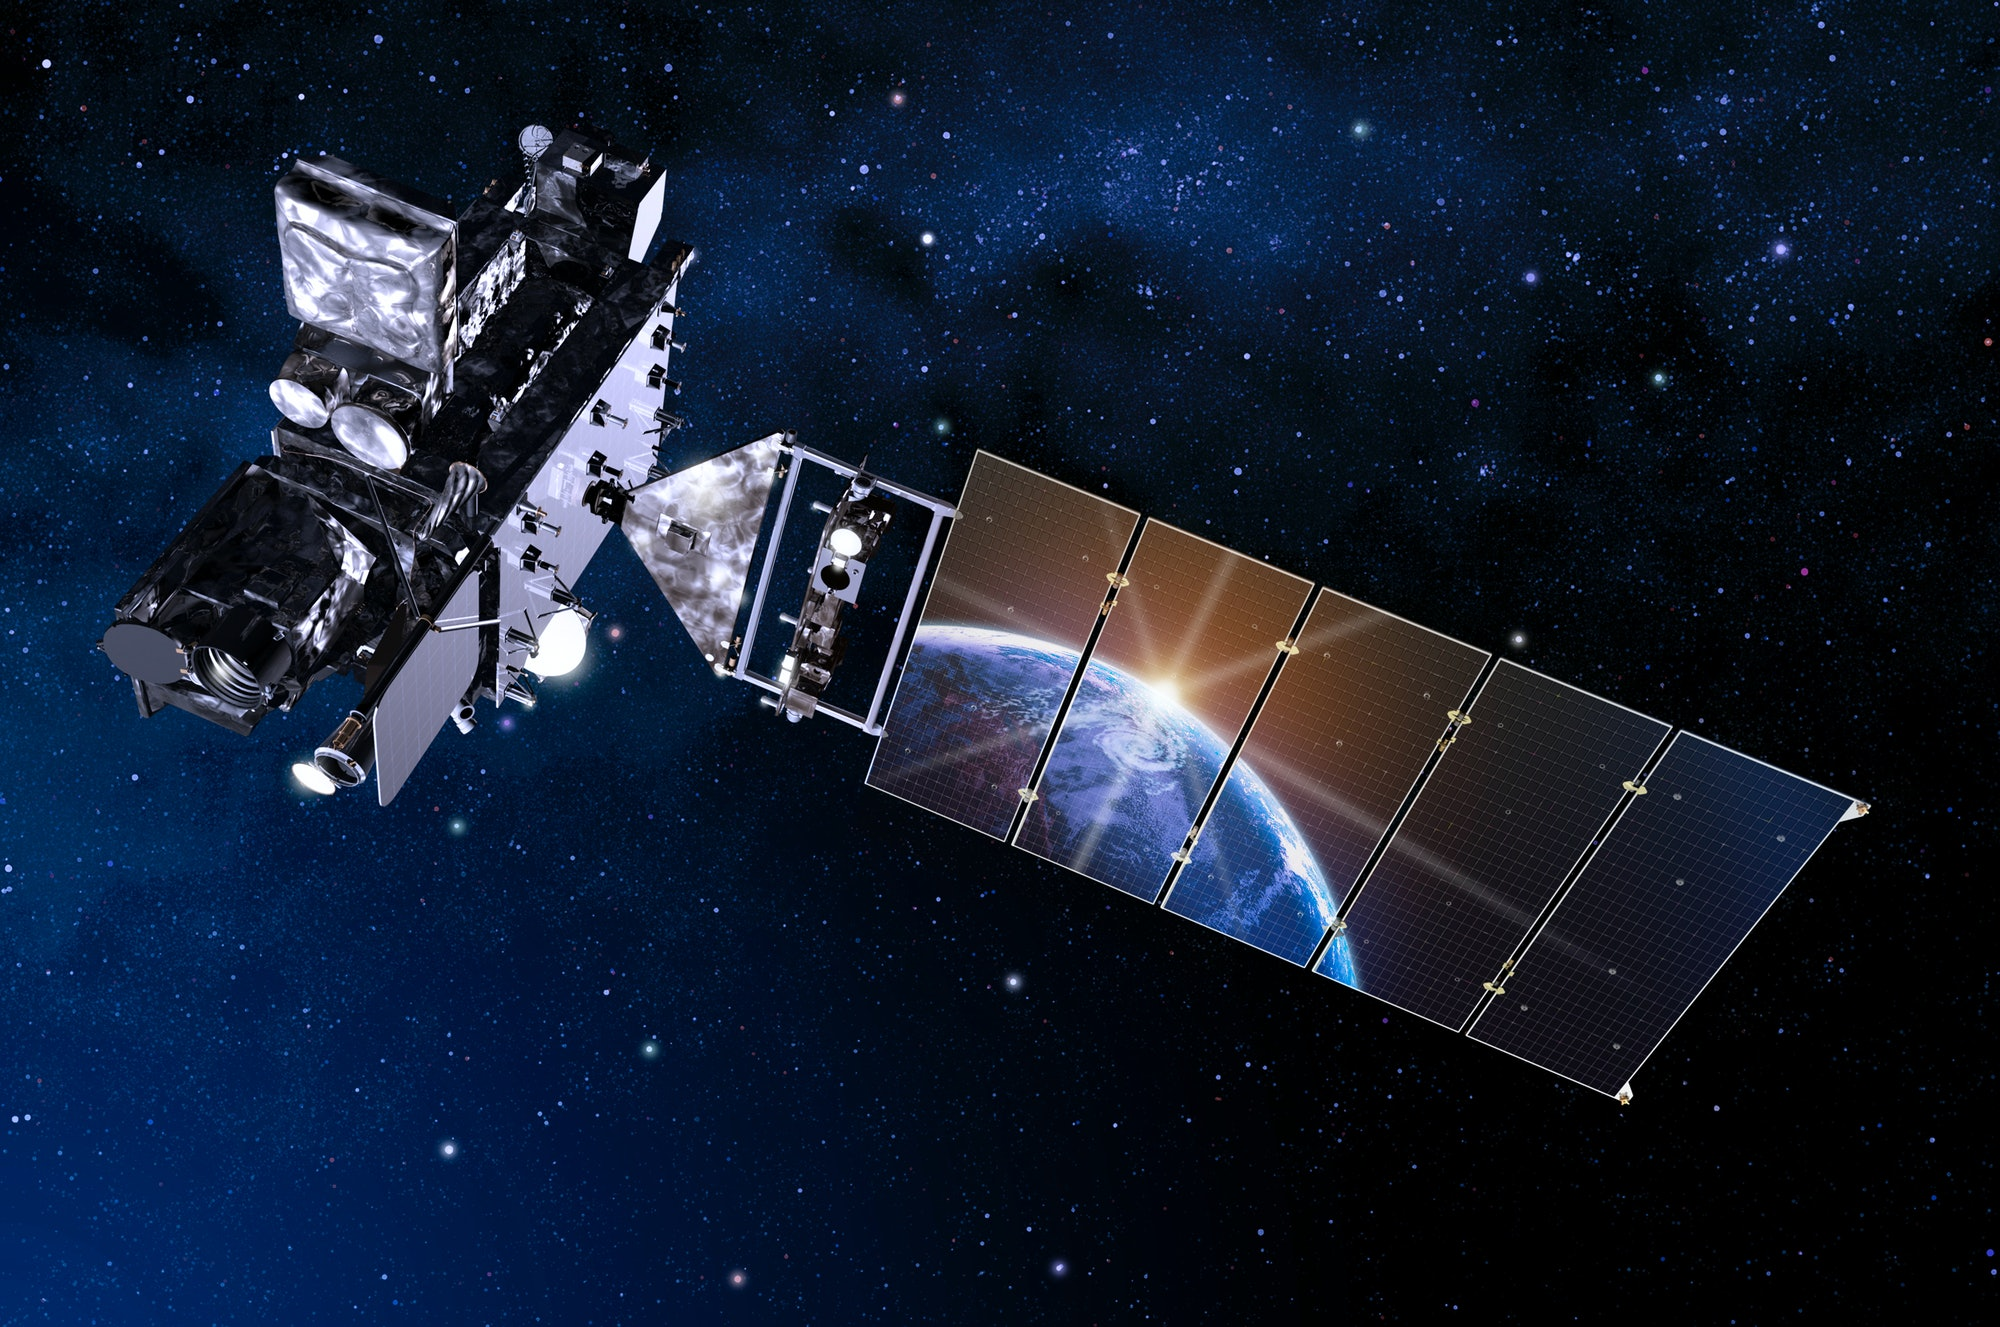 GOES-R will be able to scan the globe five times faster than current satellites.